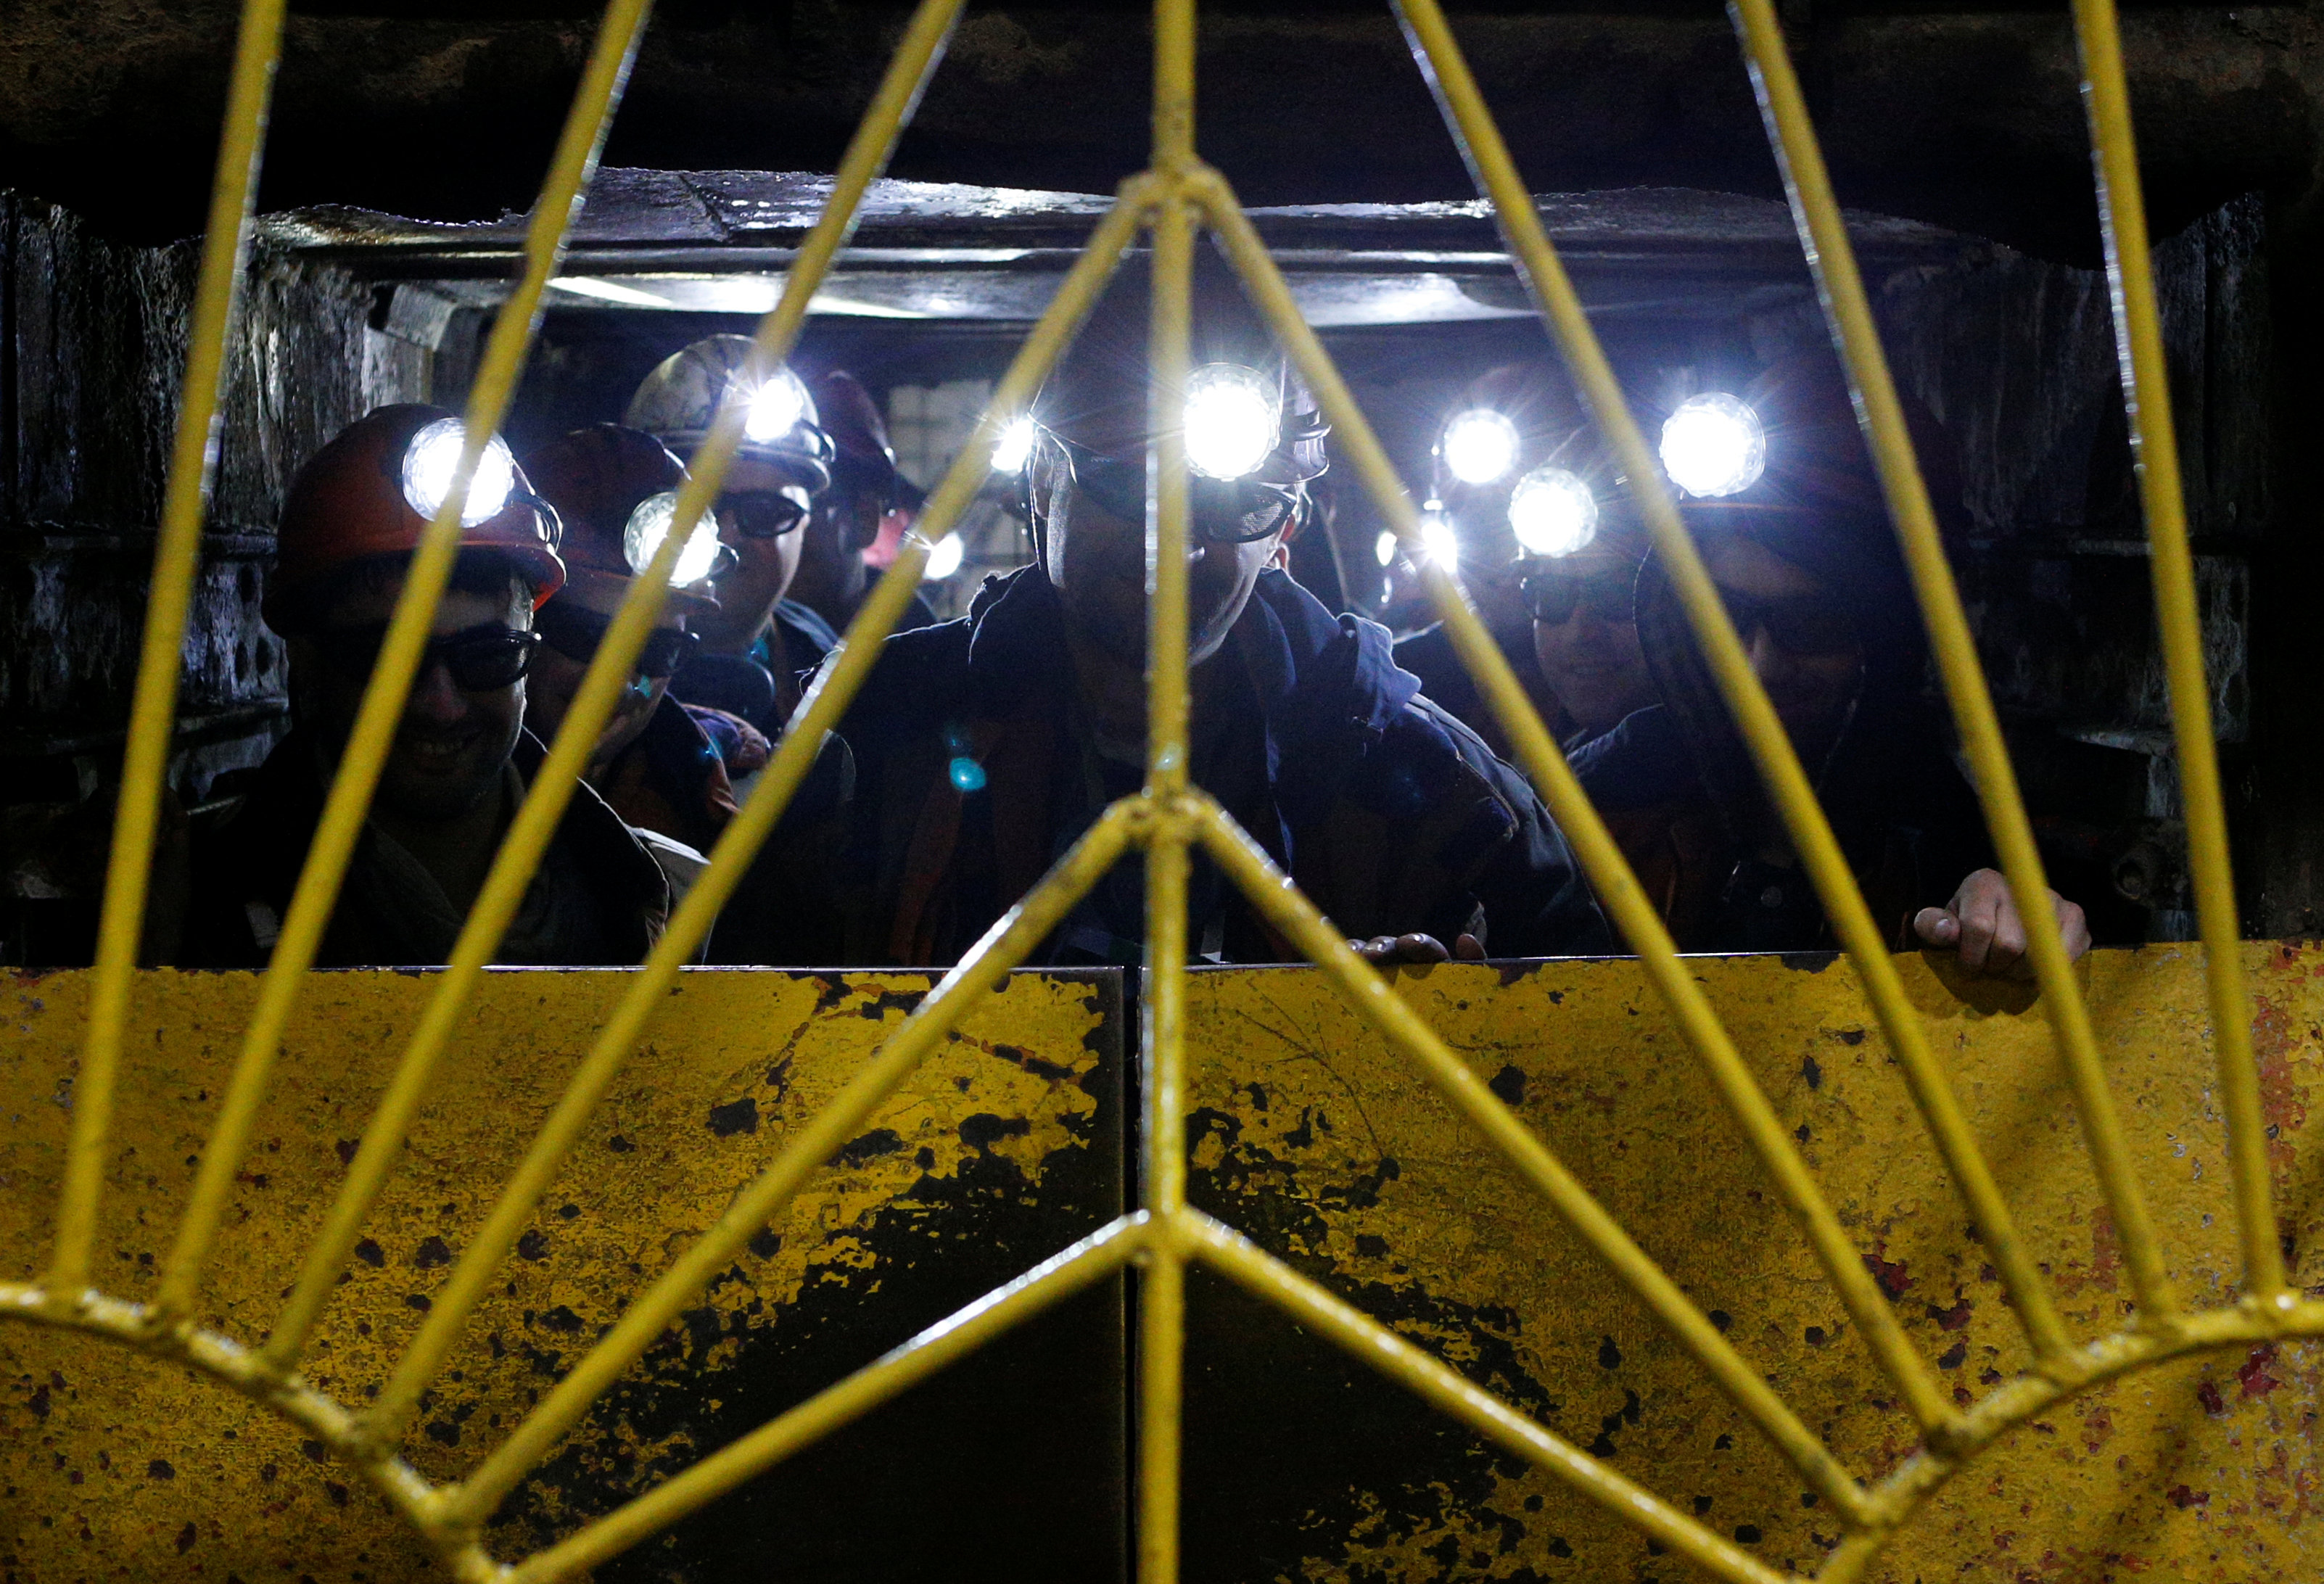 Miners gather inside an elevator before descending into the Vorgashorskaya mine near the far northern city of Vorkuta